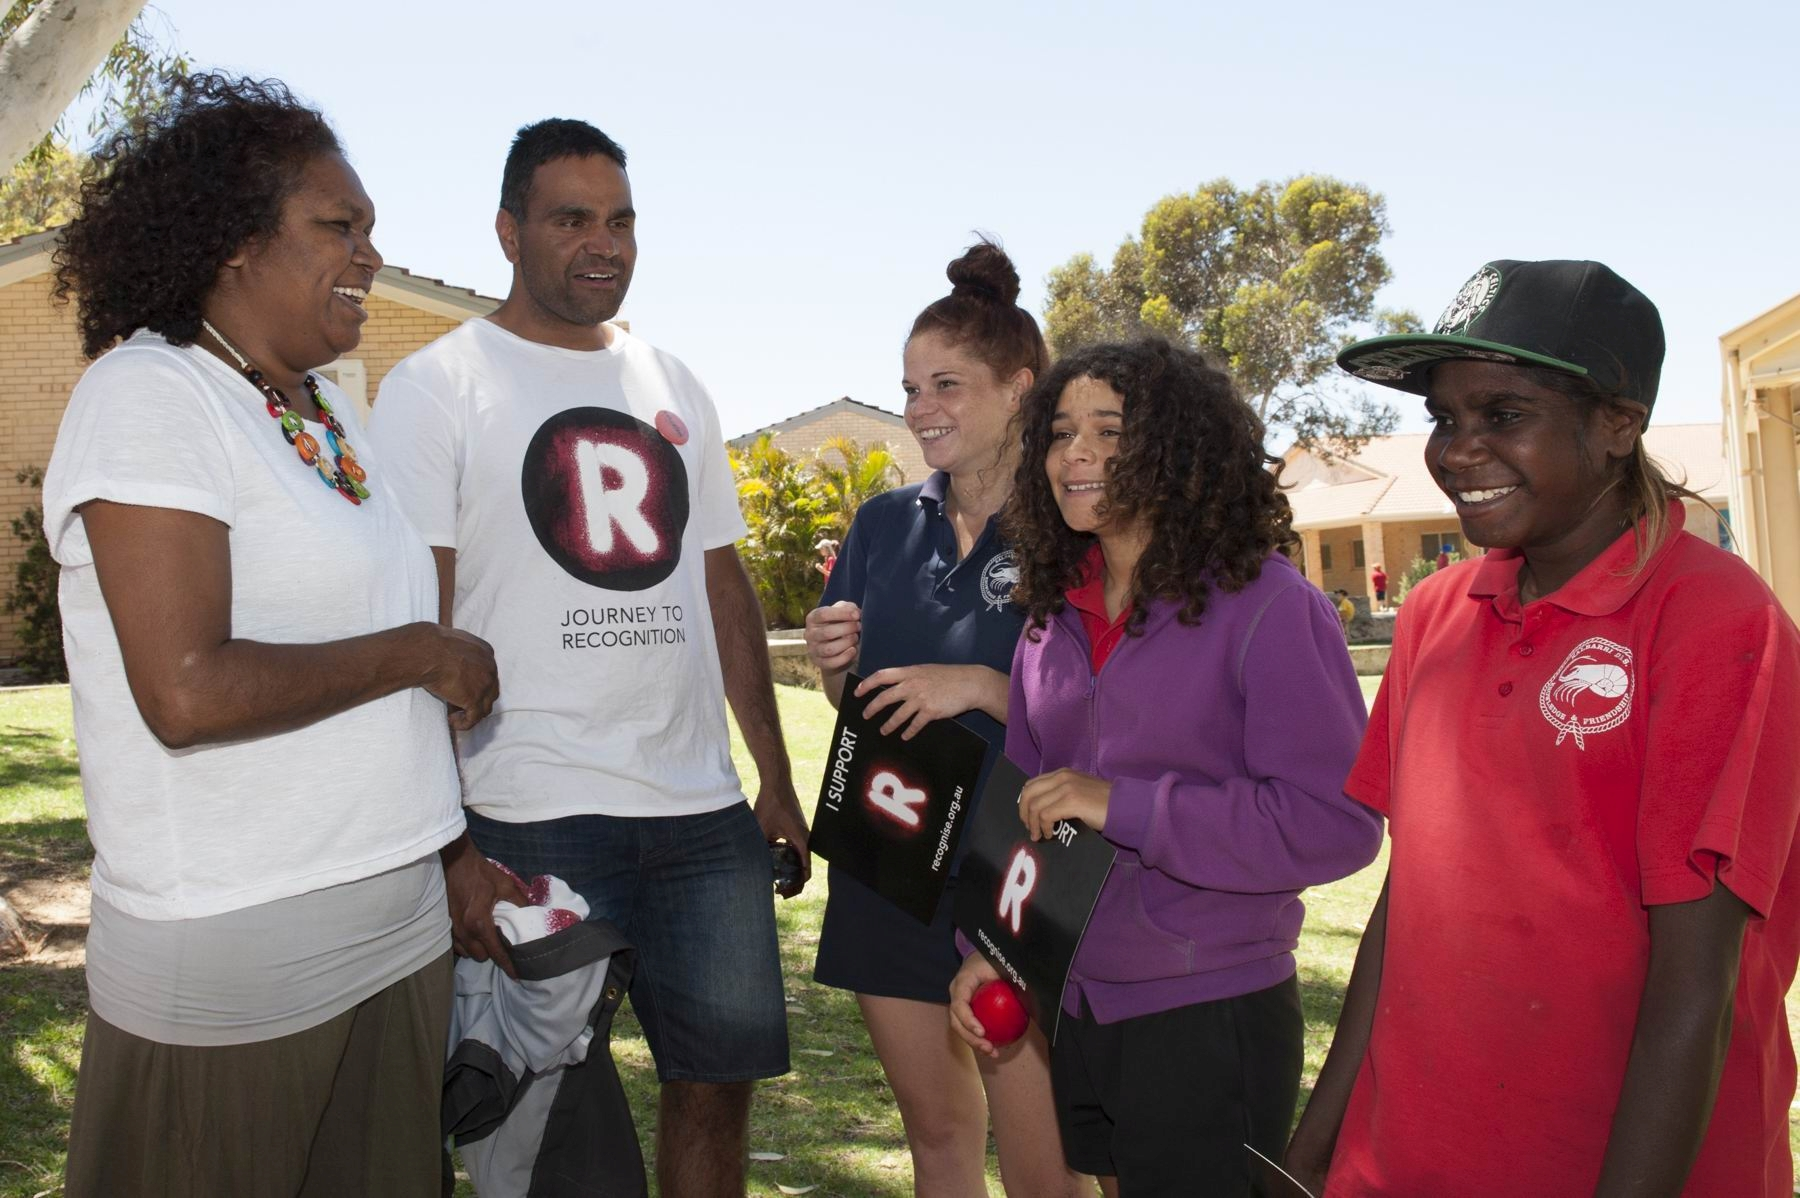 Ningali Lawford Wolf, Dale Agius and students Teahl Taylor, Santana Taylor and Emily Lawford were part of the Journey to Recognition.